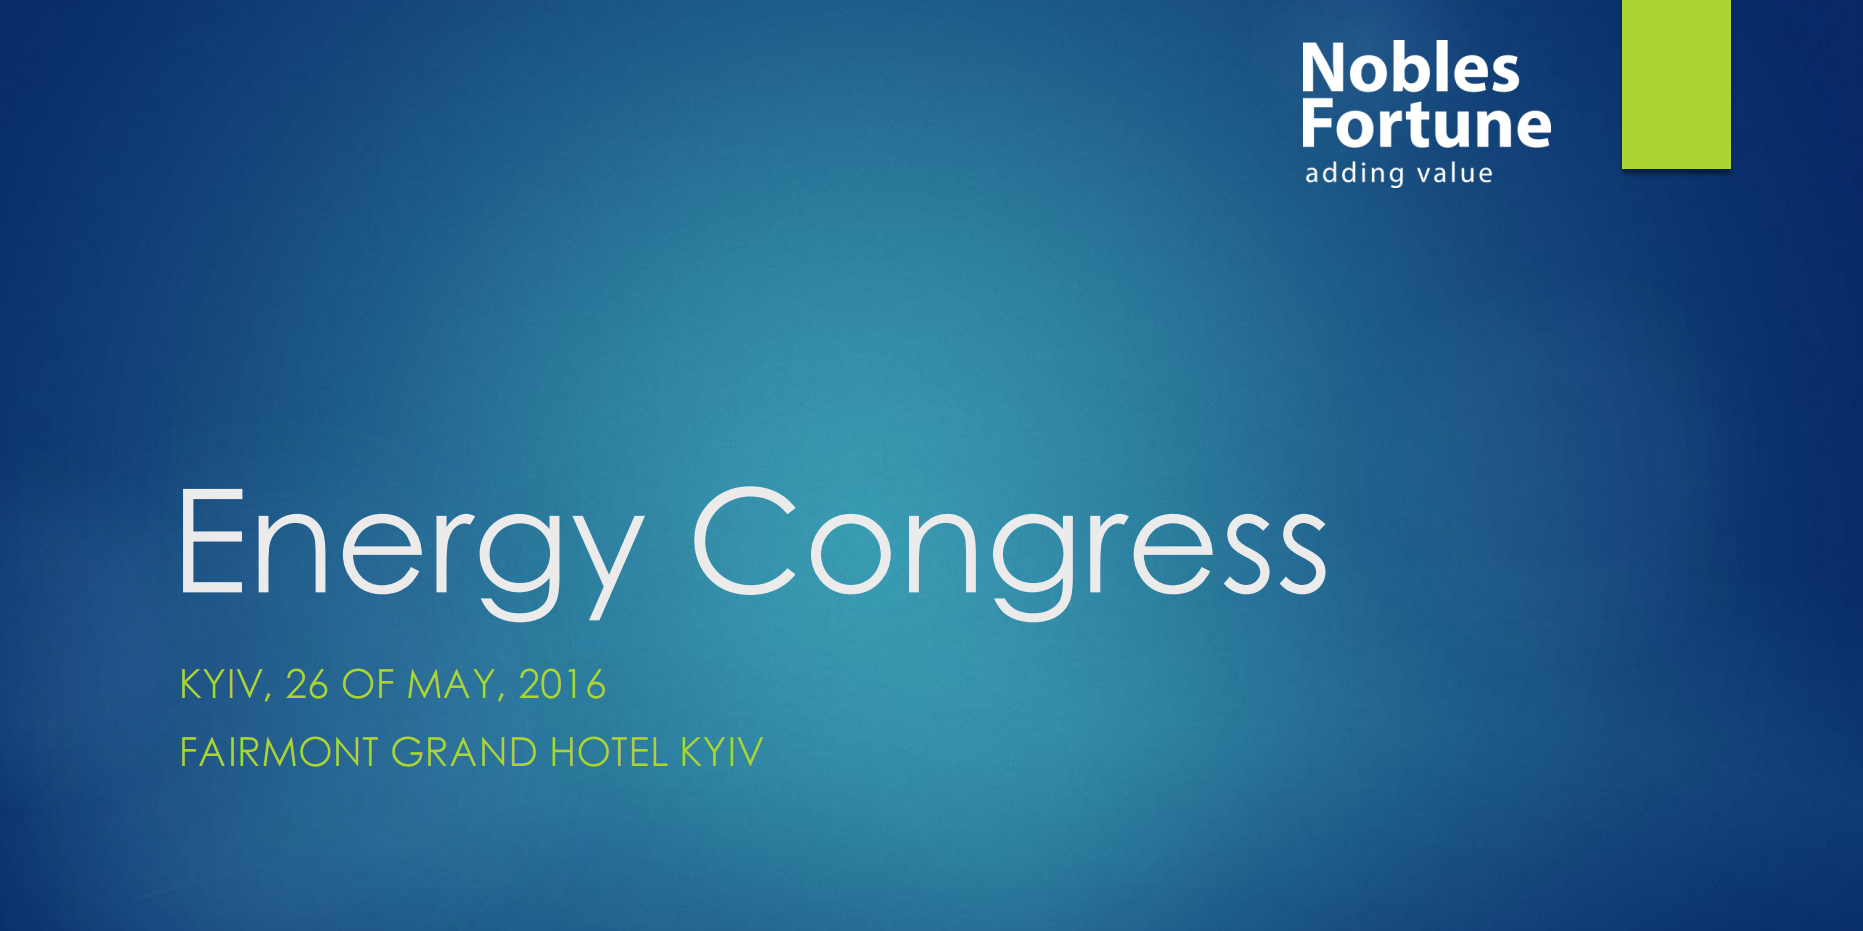 ENERGY CONGRESS: Energy Spring 2016